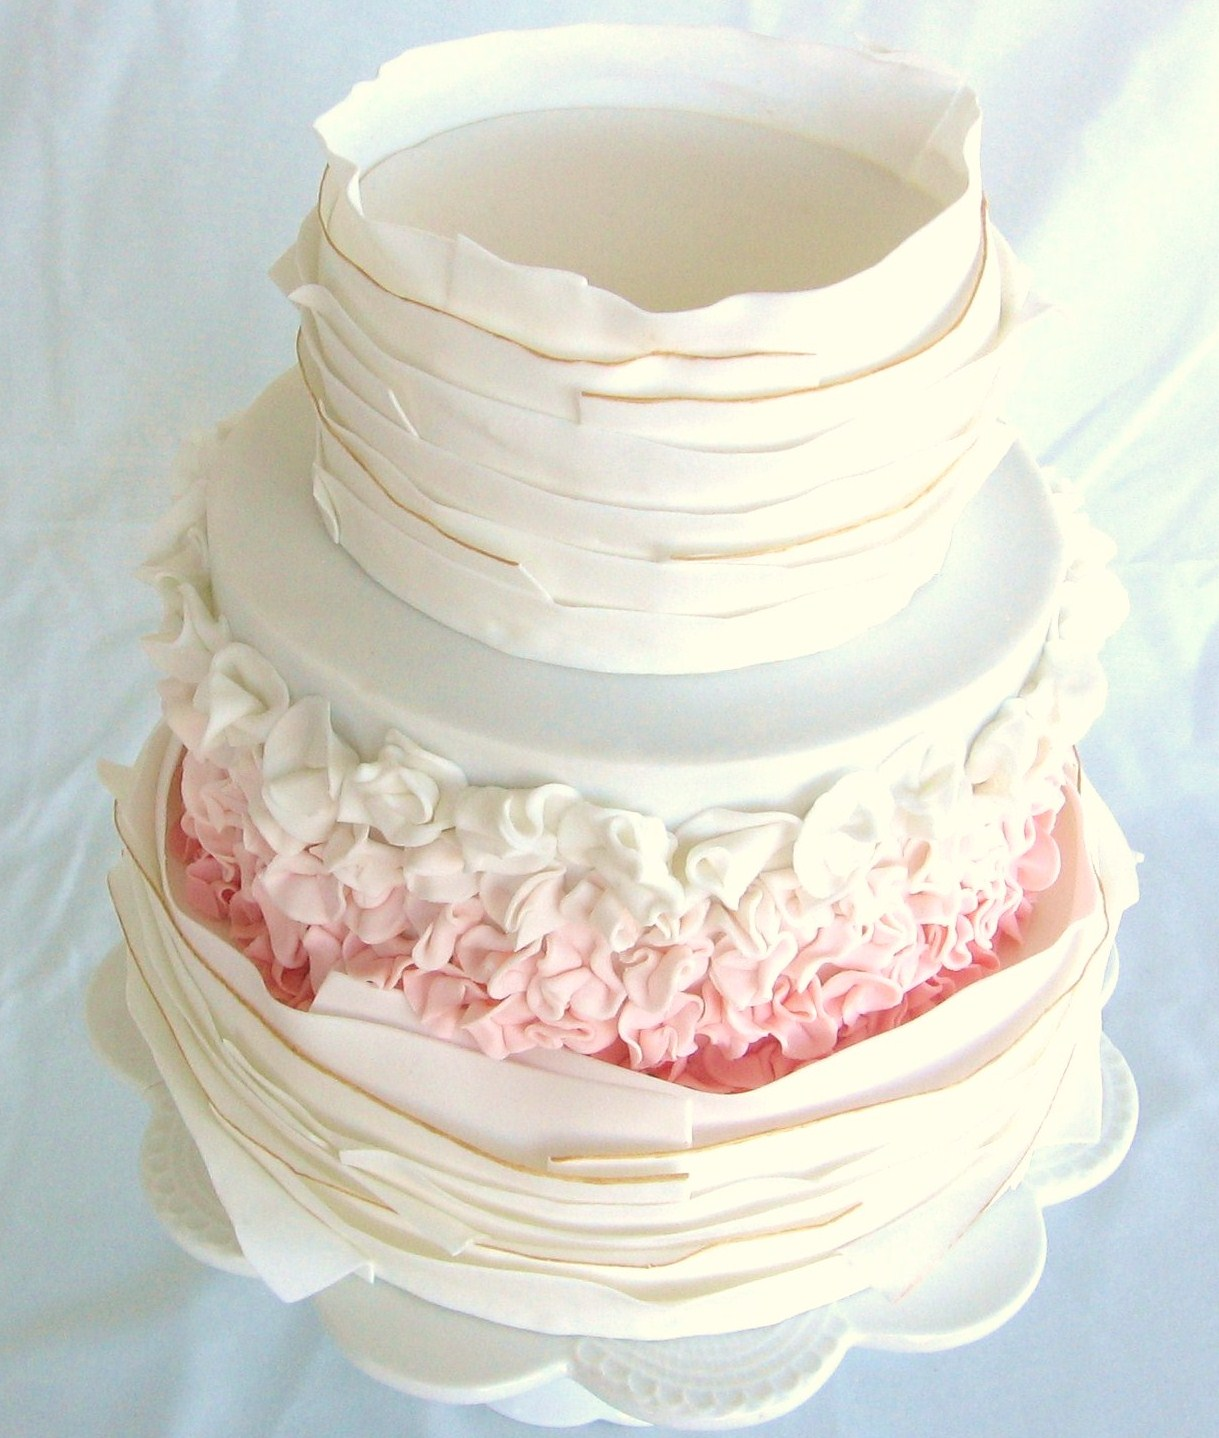 ... cake coffee tres leches cake pig cake ruffle tower cake recipe martha